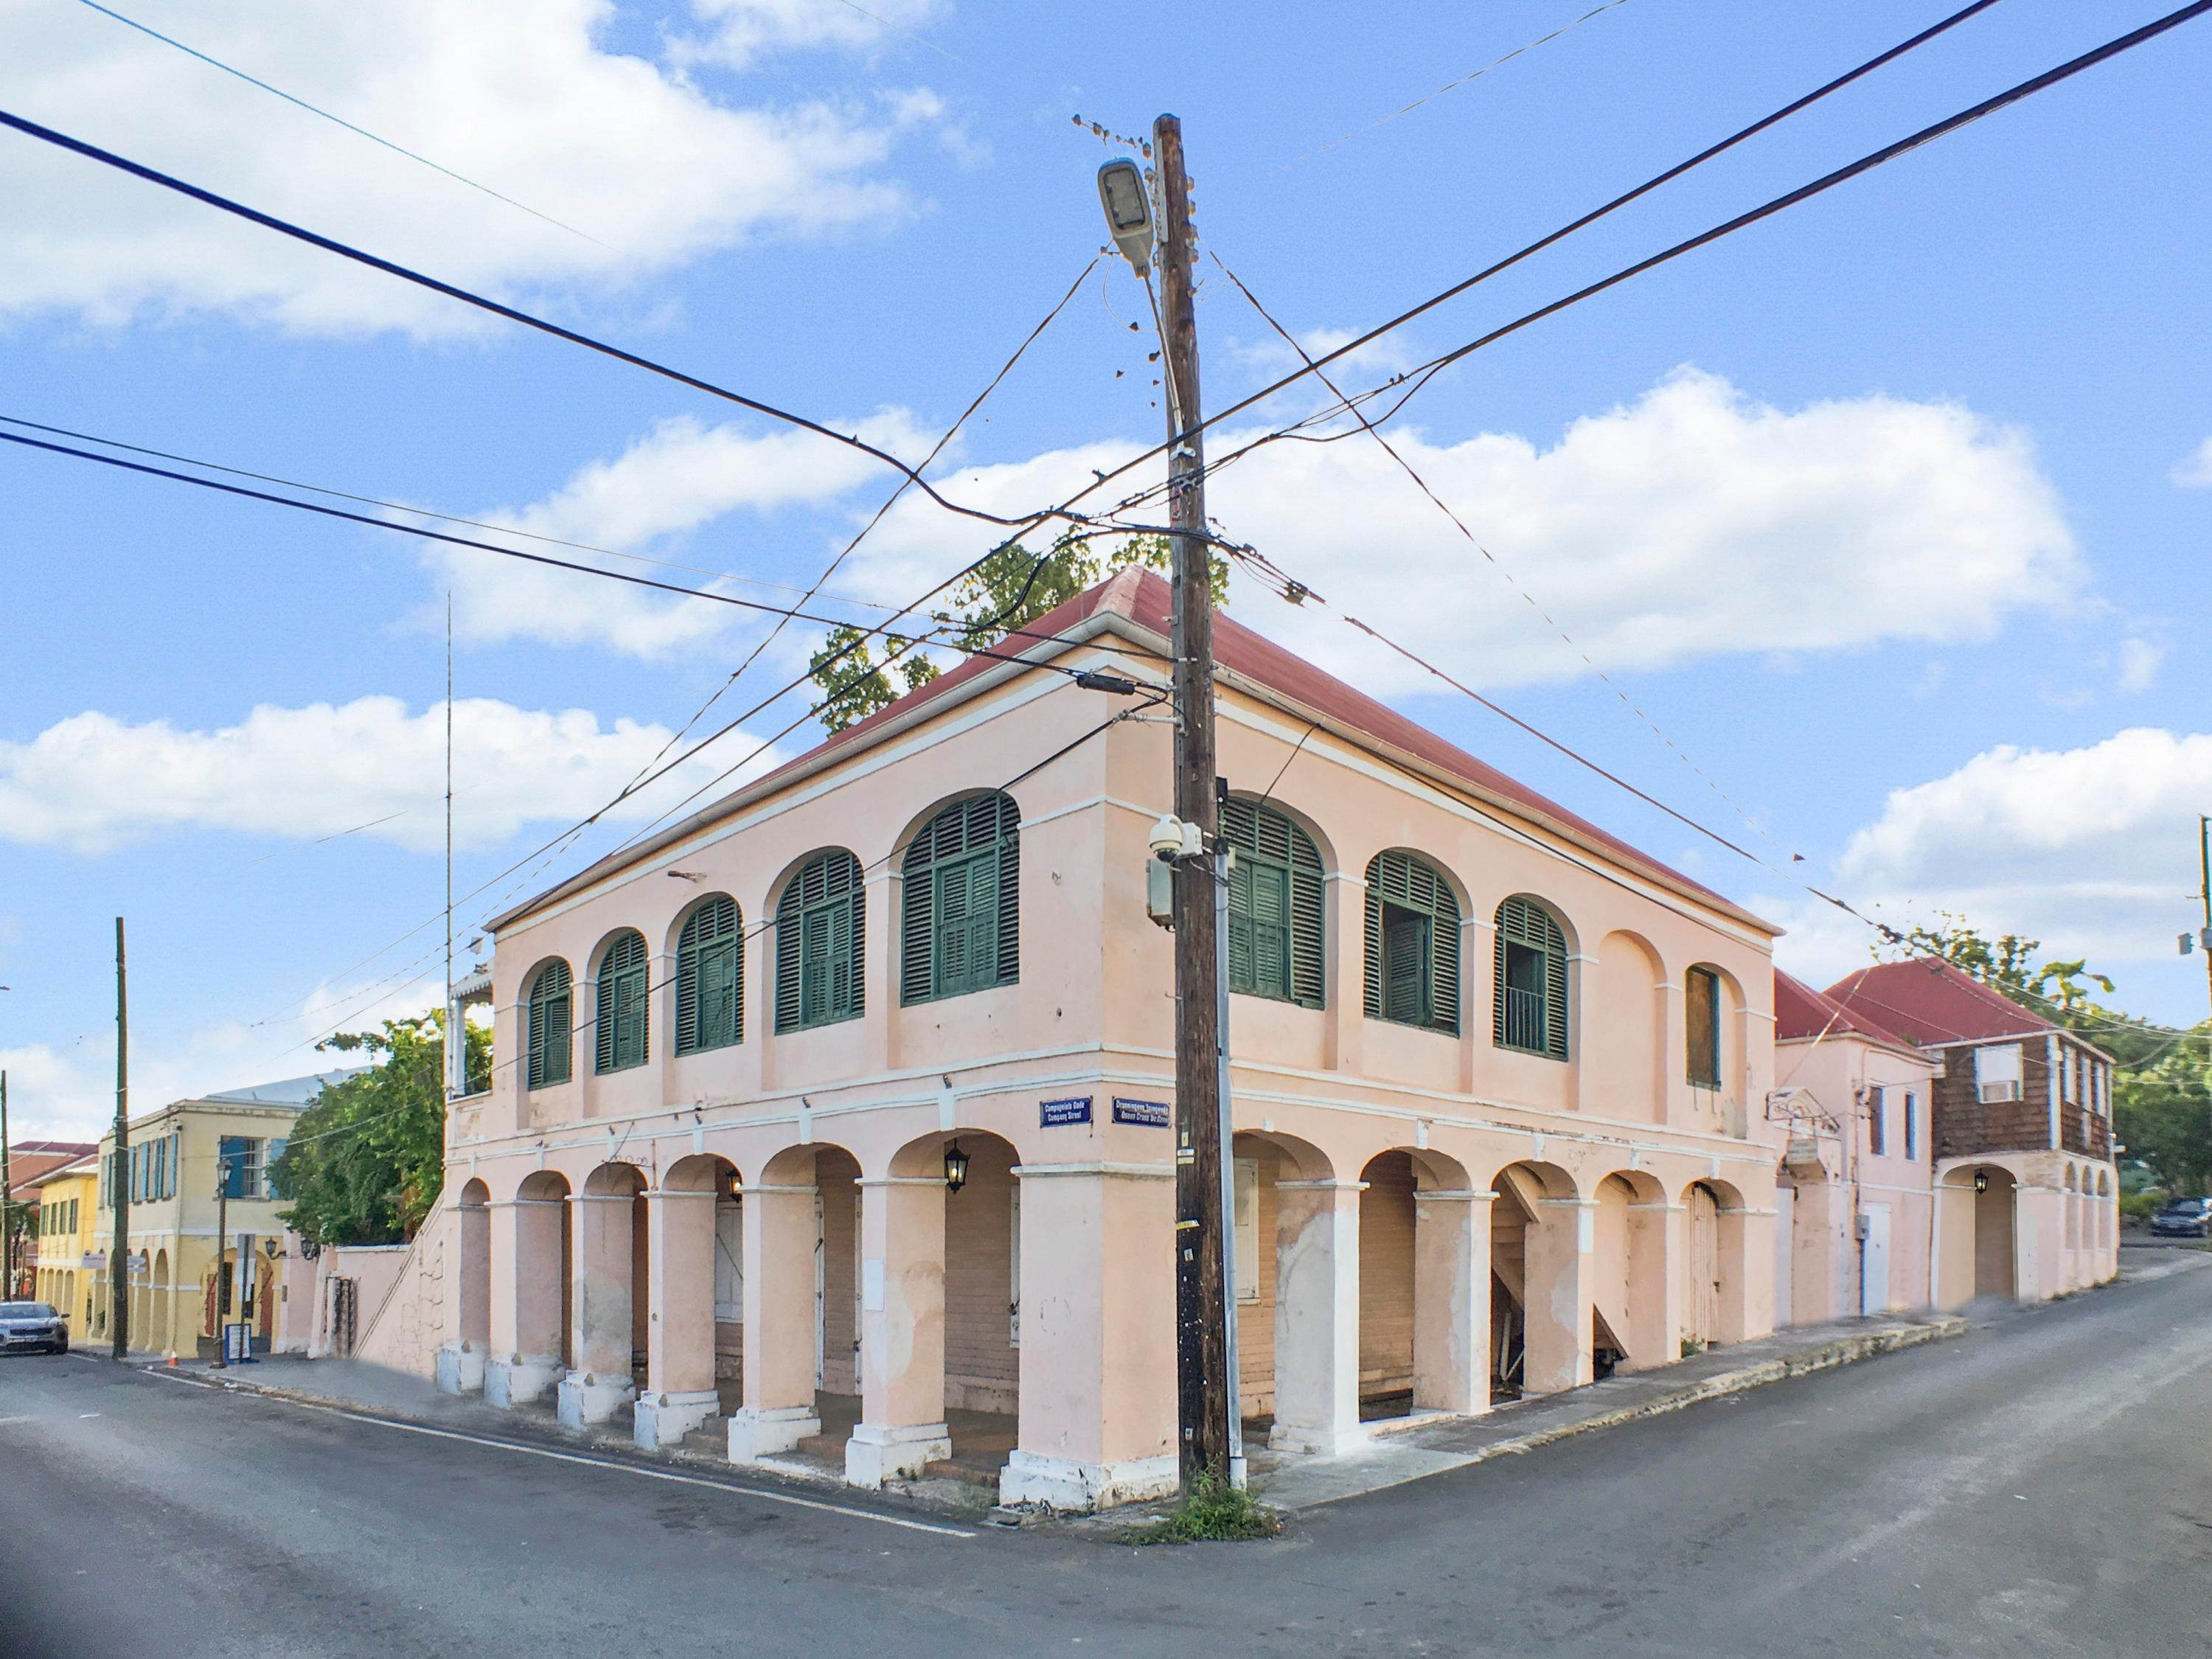 Commercial for Sale at 6 Company Street CH St Croix, Virgin Islands 00820 United States Virgin Islands